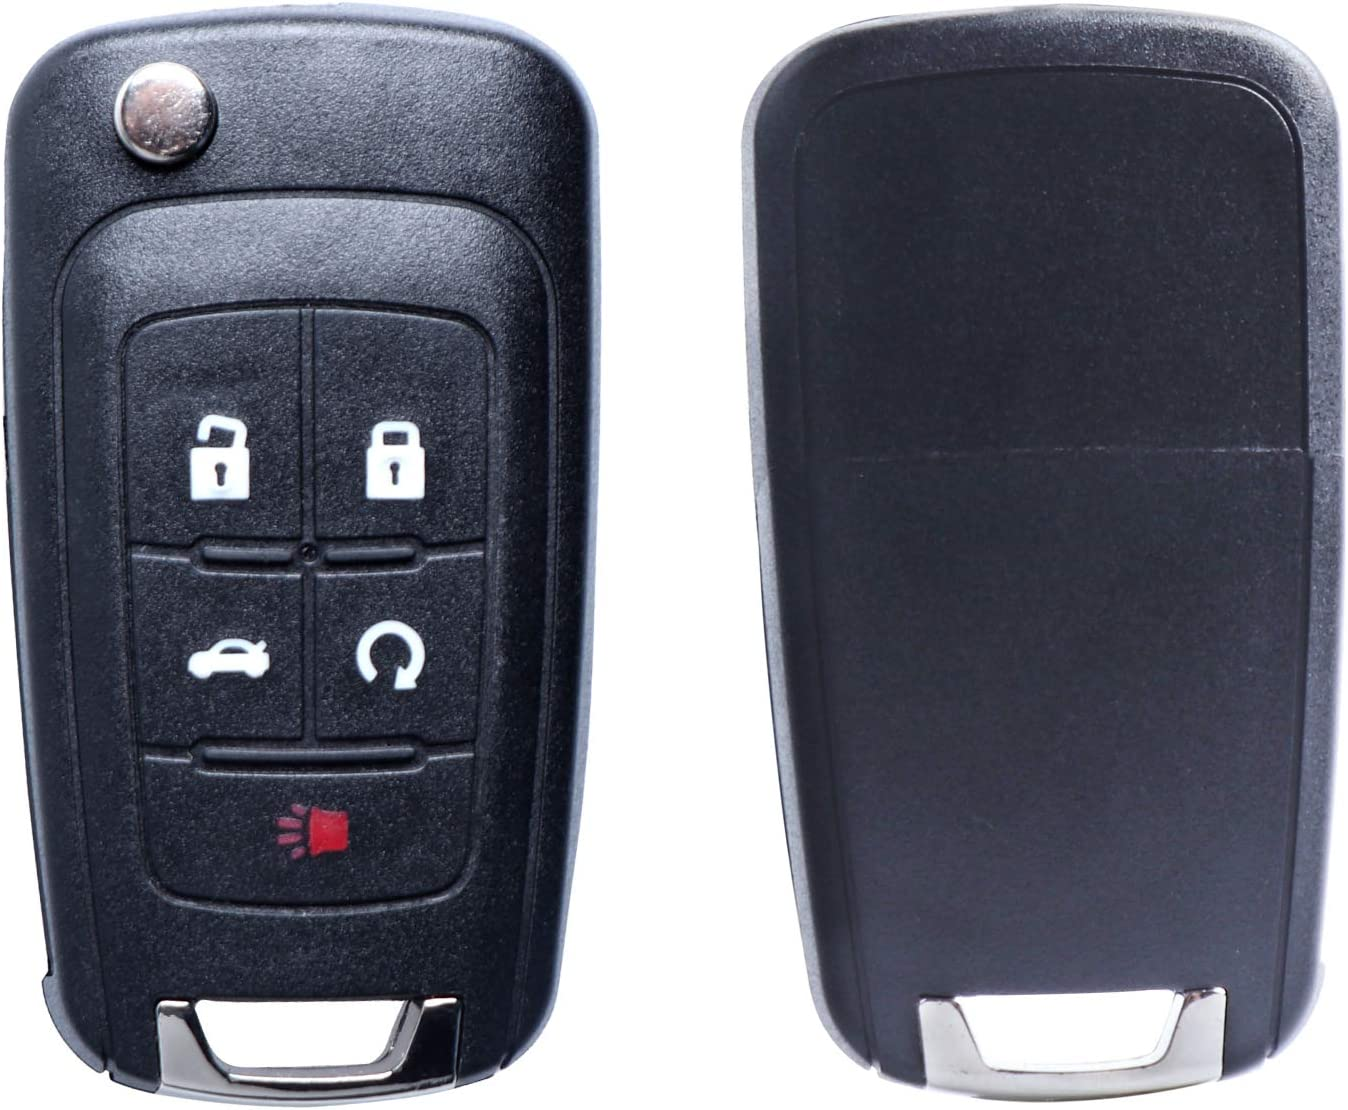 Replacement Uncut Trunk Car Key Fob Keyless Entry Remote Flip Fits 2010-2019 Chevy Equinox,2011-2016 Chevy Cruze,2010-2016 Chevy Malibu Camaro OHT01060512 Pack of 2